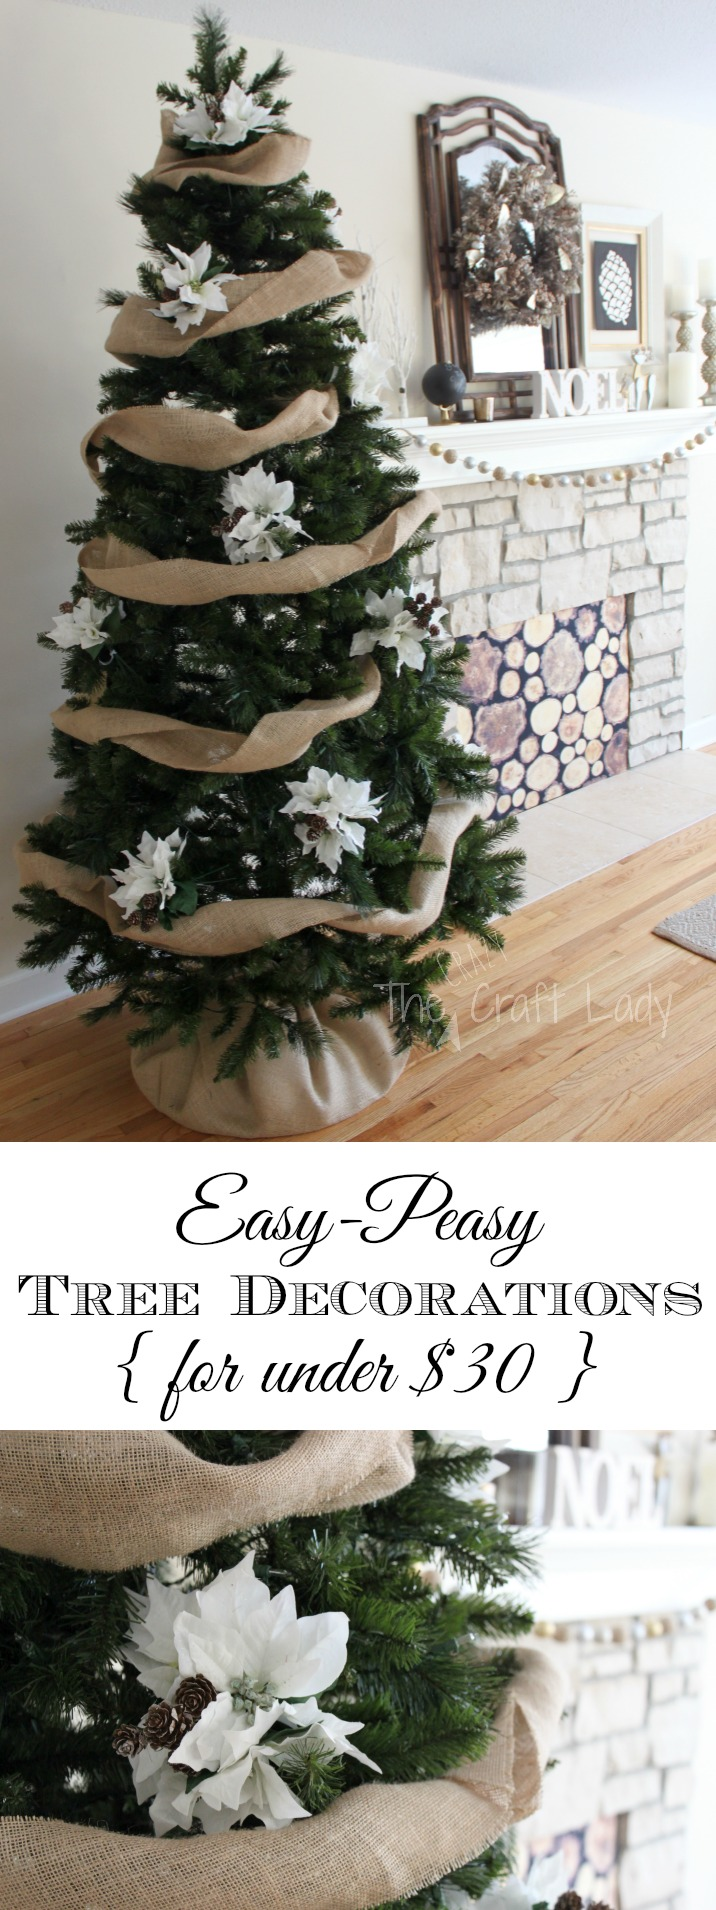 see how easy diy christmas tree decorating can be using a few simple supplies - Burlap Christmas Decorations Wholesale